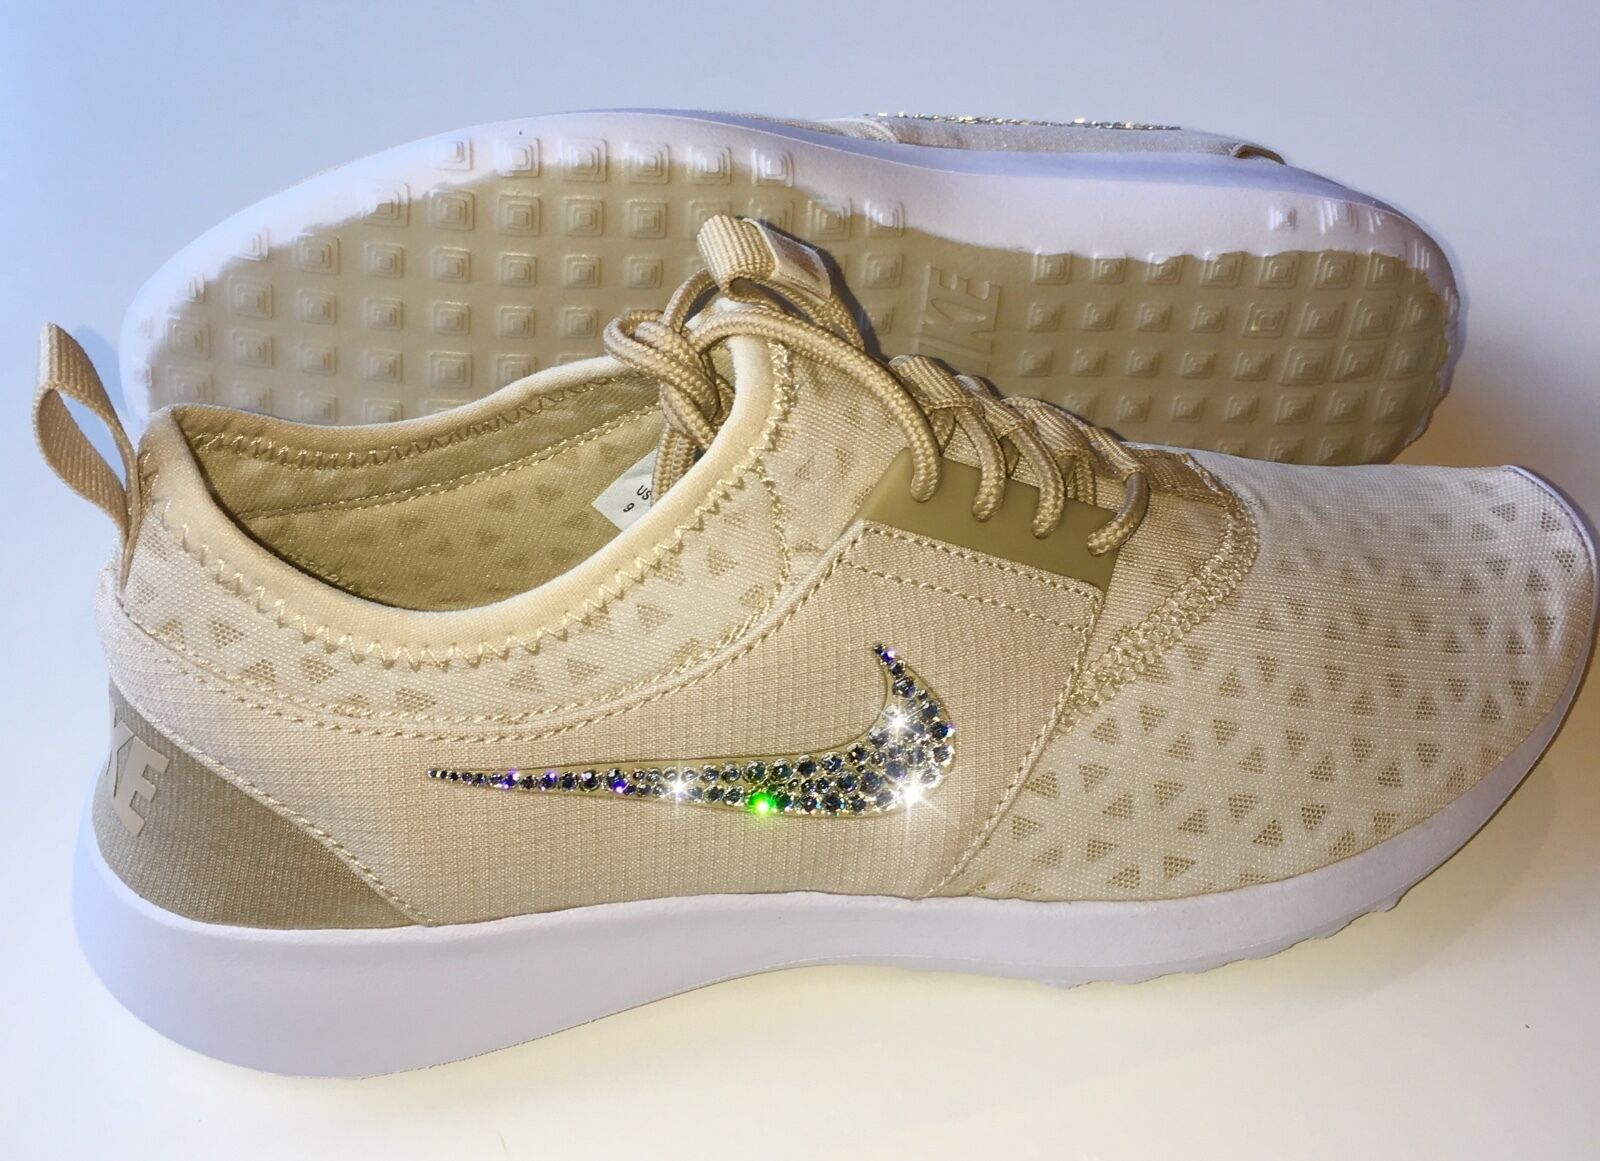 Bling Nike Juvenate chaussures w/ Swarovski Crystals  NUDE w/ Bedazzled Swooshes